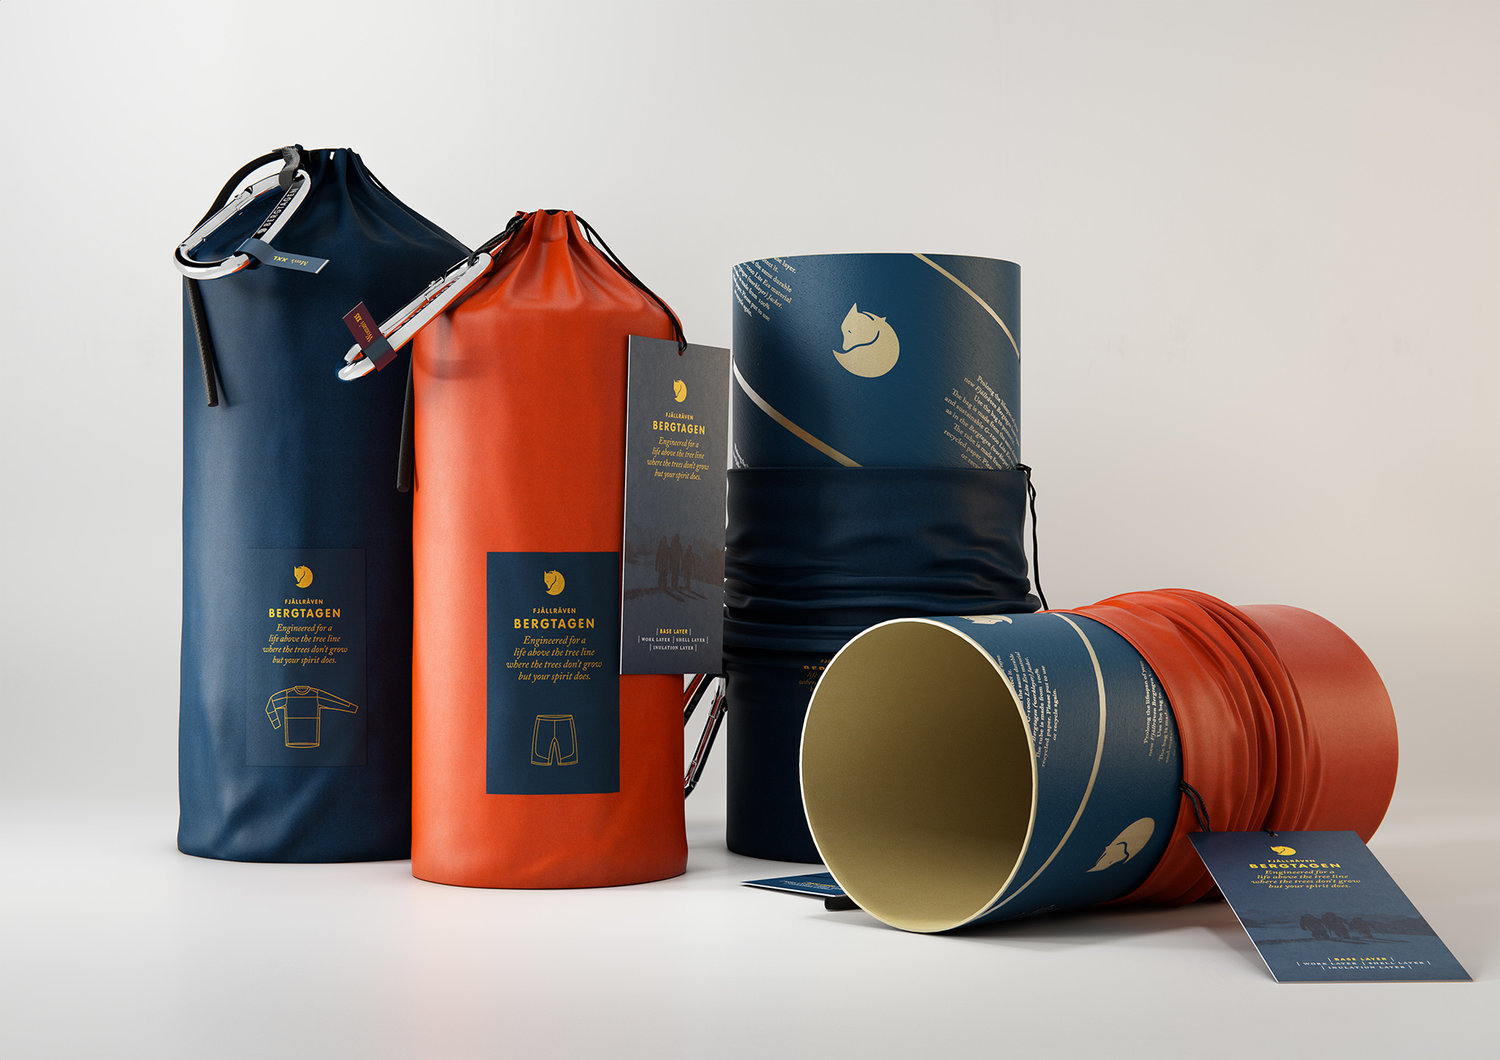 Premium packaging made with an extended lifecycle in mind. Made by Packground